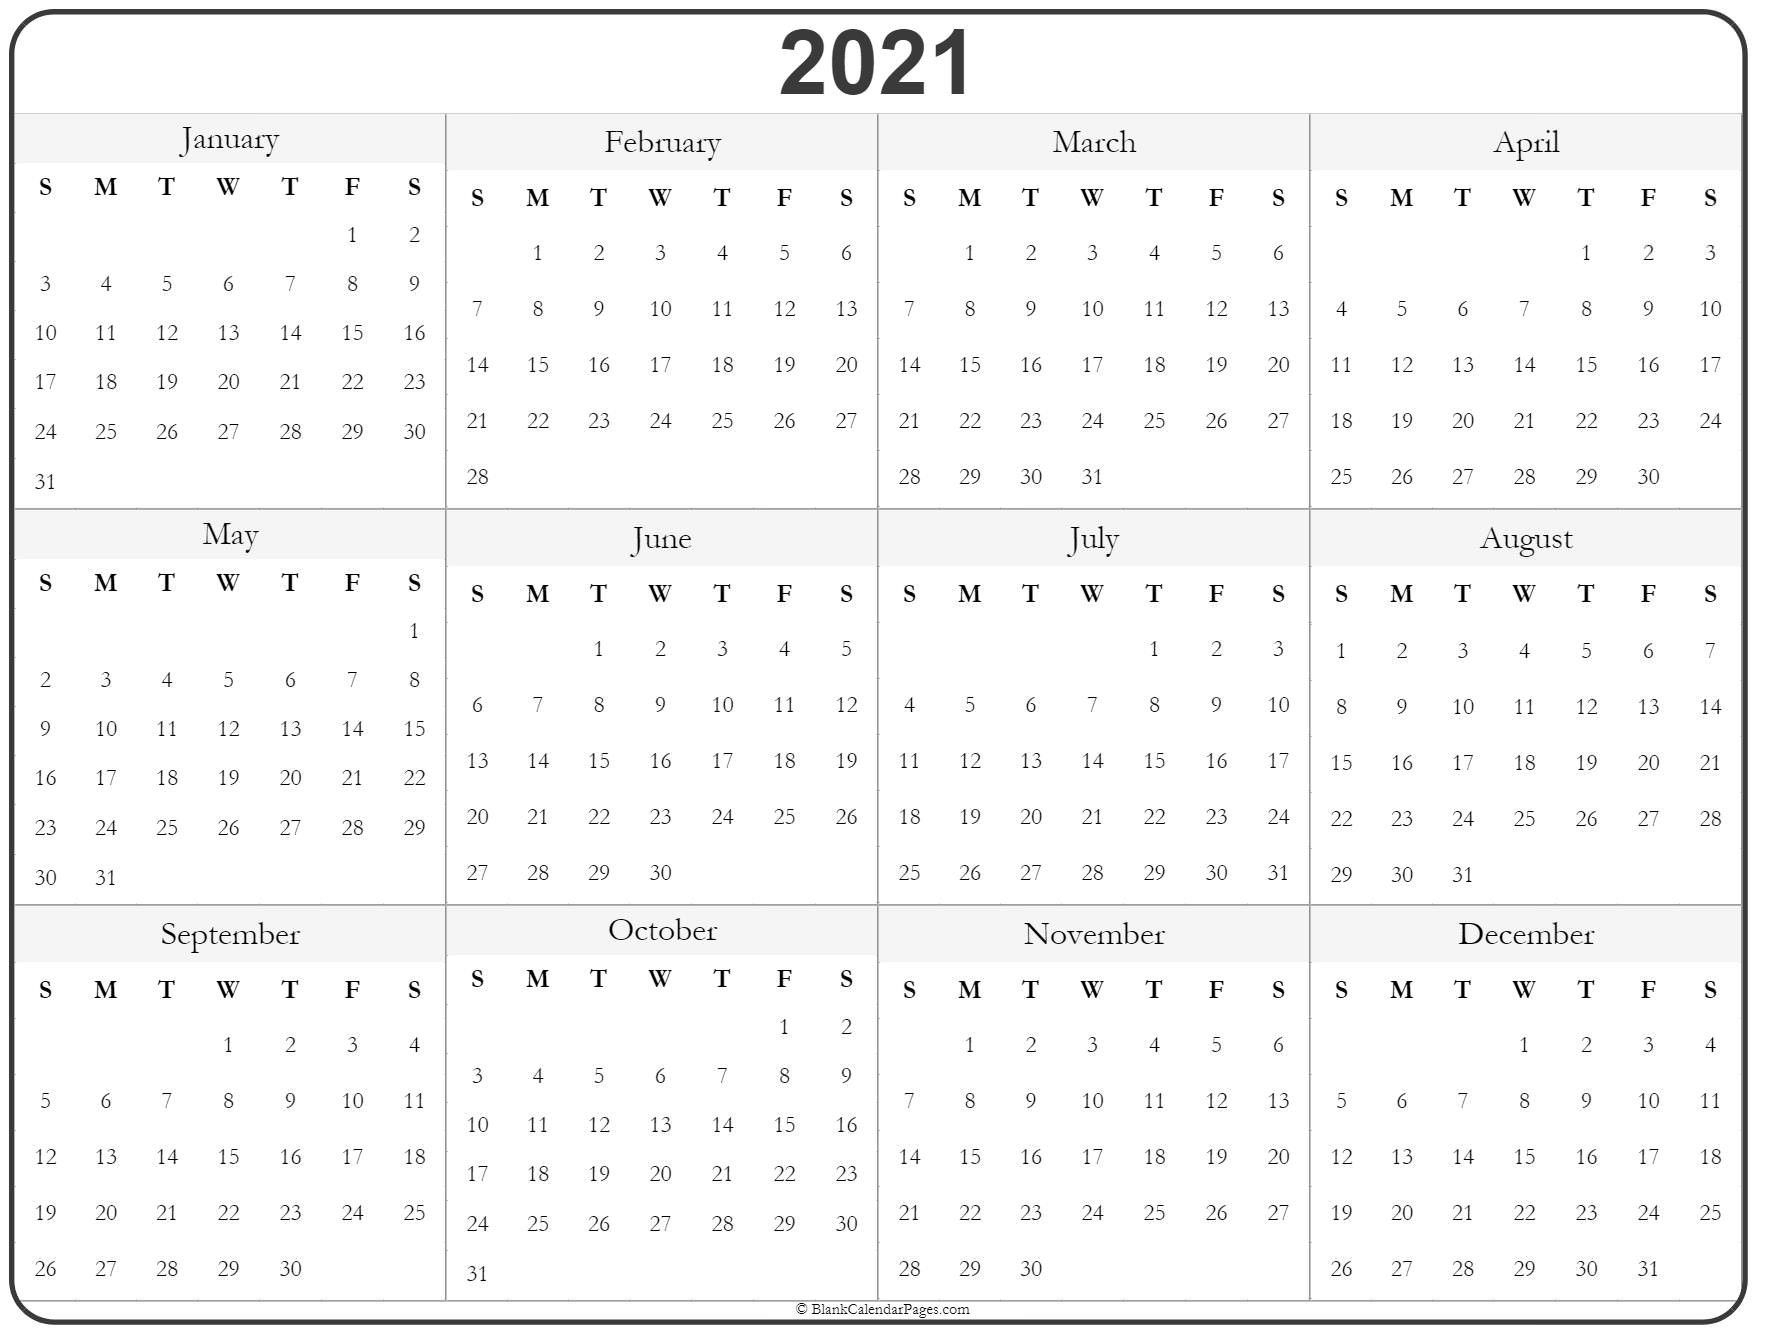 Get Free Print 2021 Calendars Without Downloading